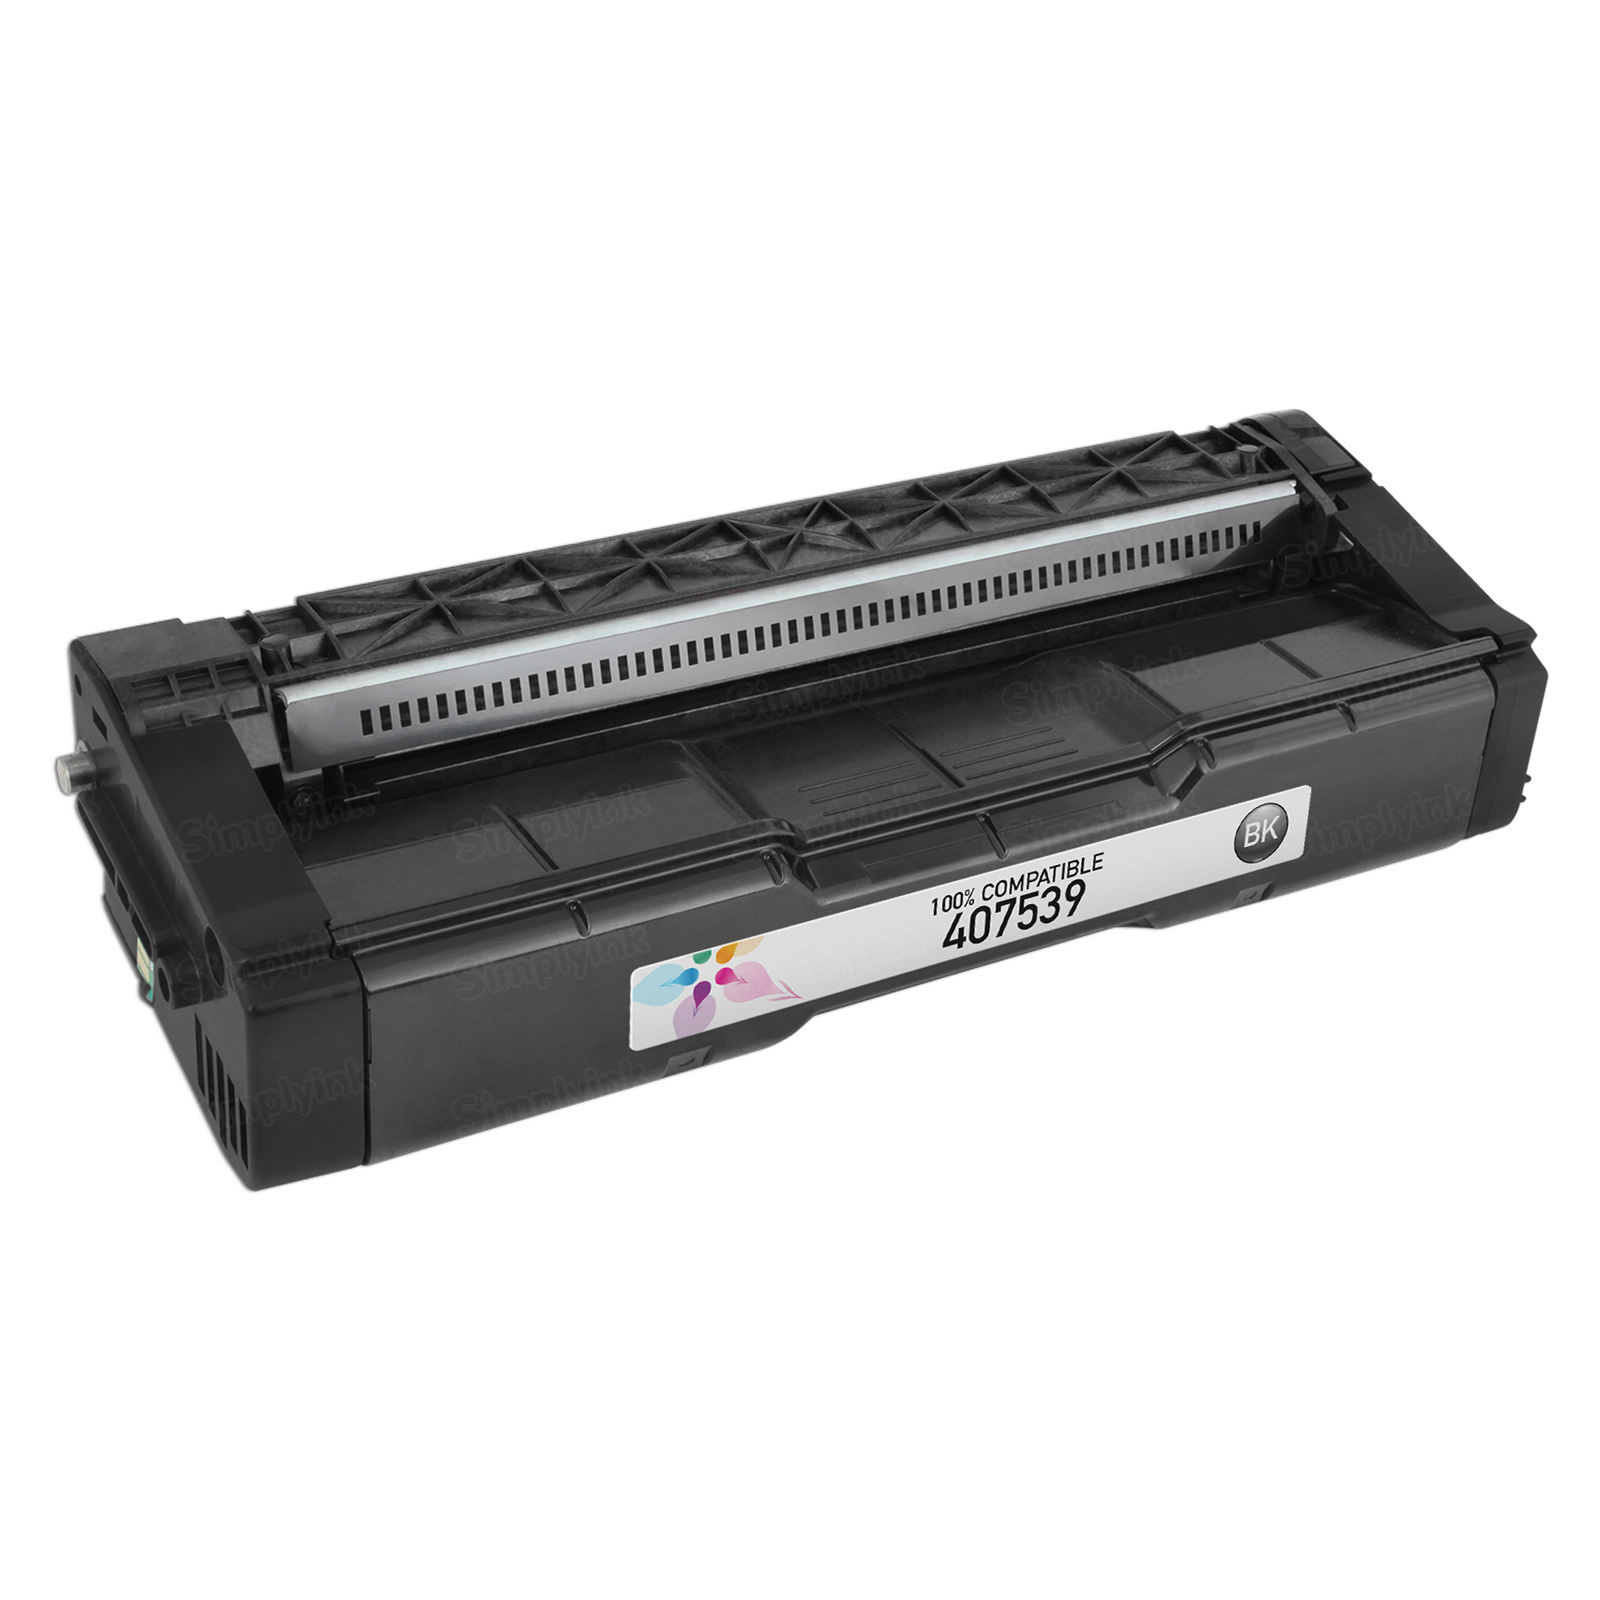 Compatible 407539 Black Toner for Ricoh